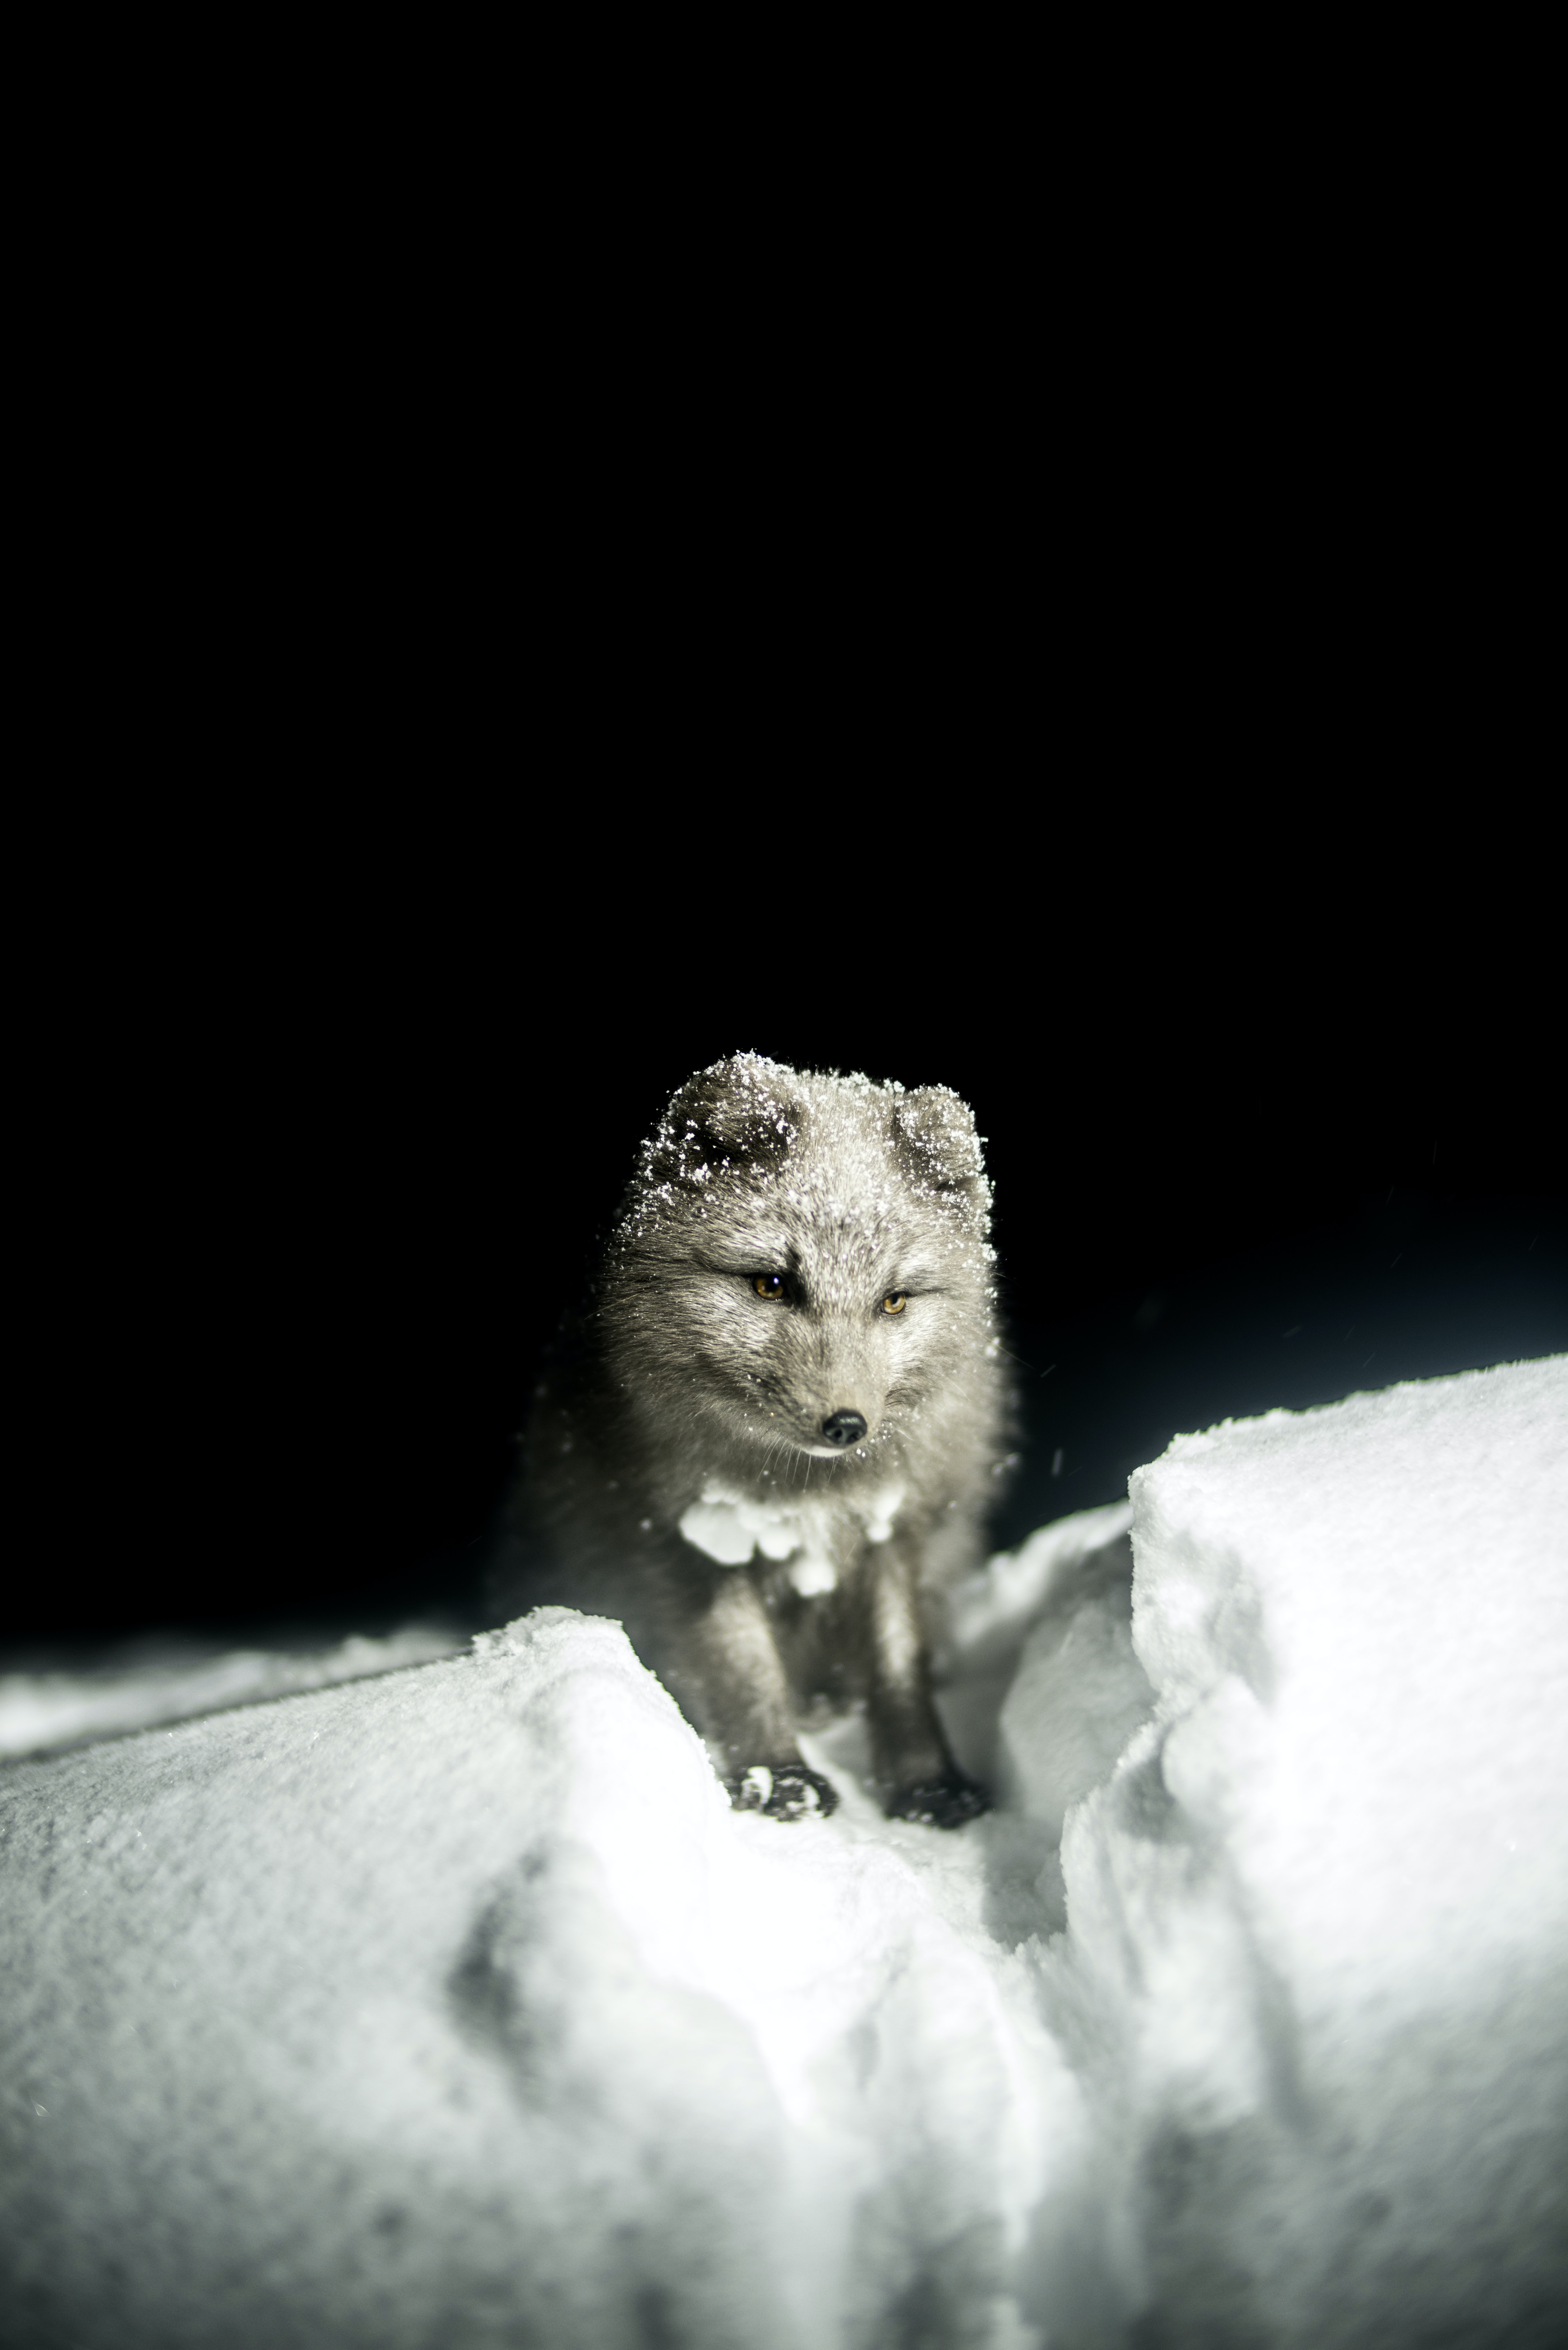 Arctic fox standing with white fur in the snow with a dark background